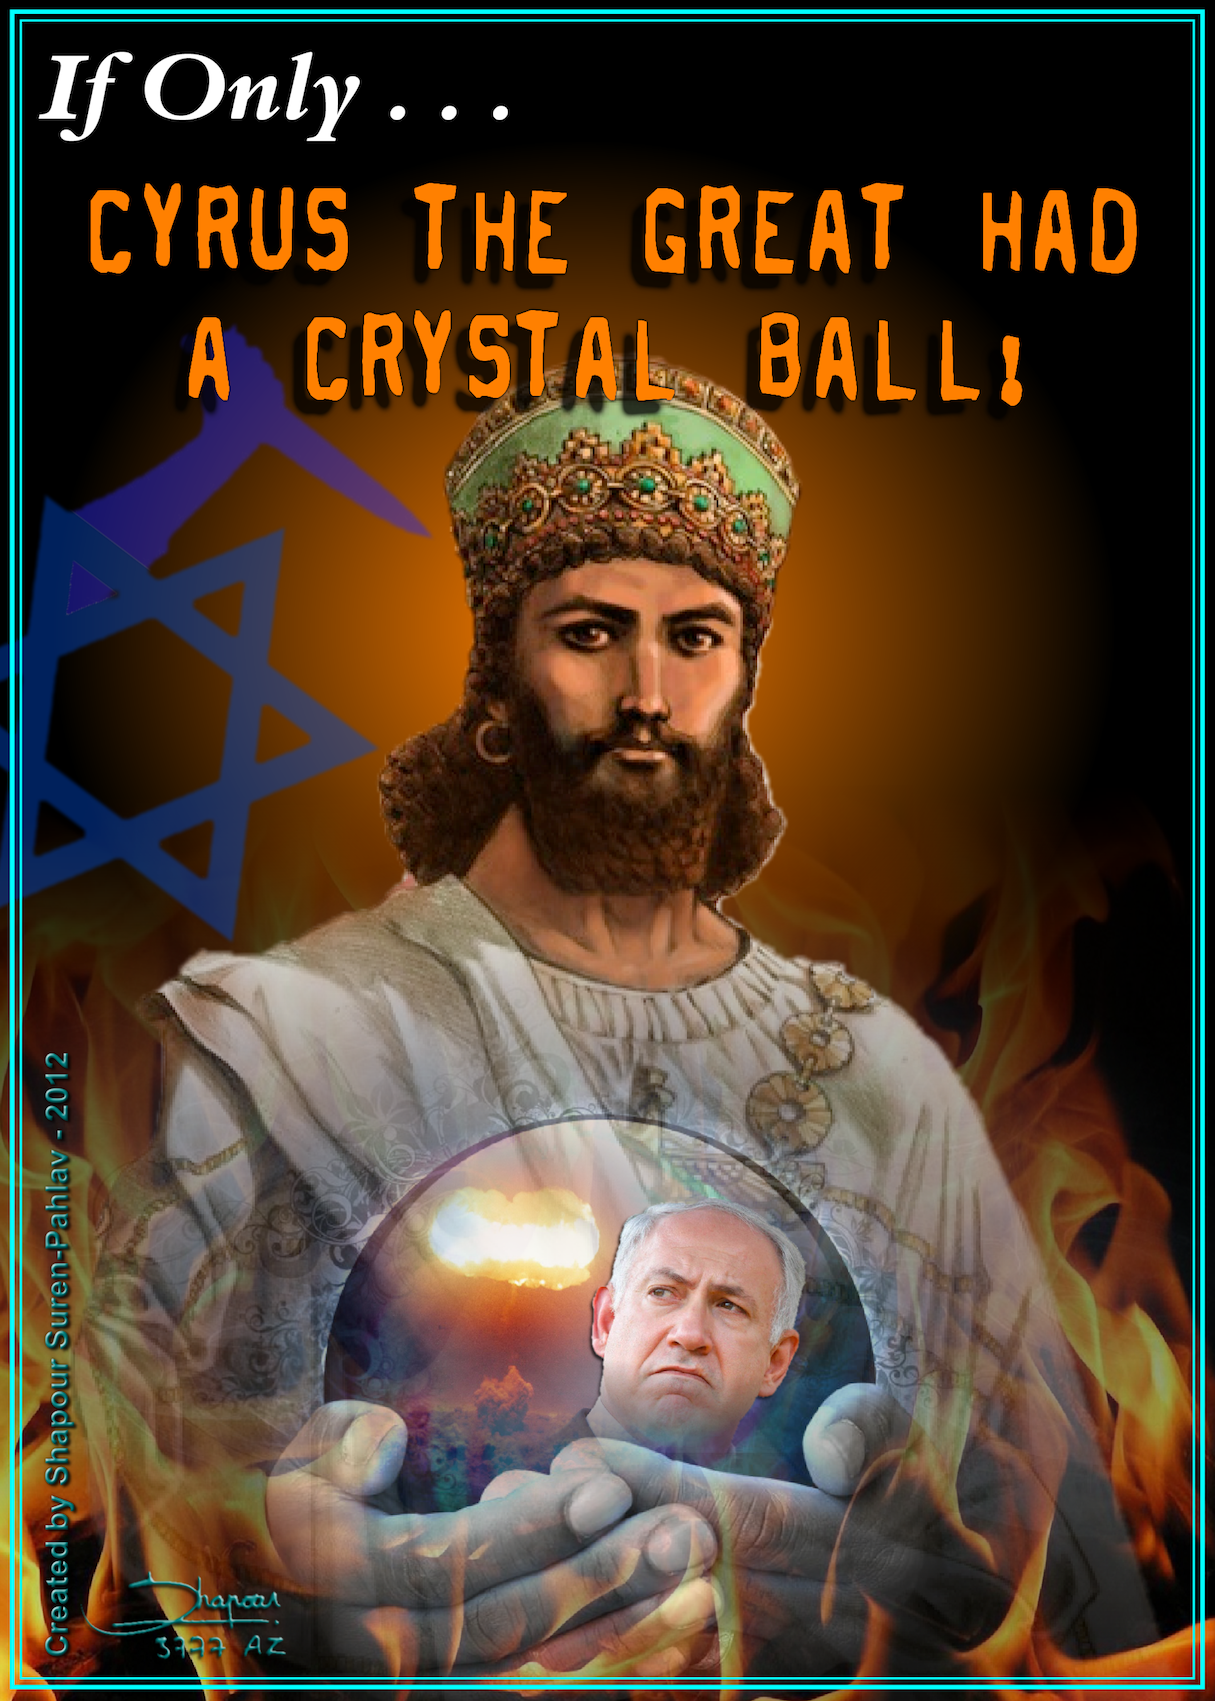 If Only, Cyrus the Great had a crystal ball